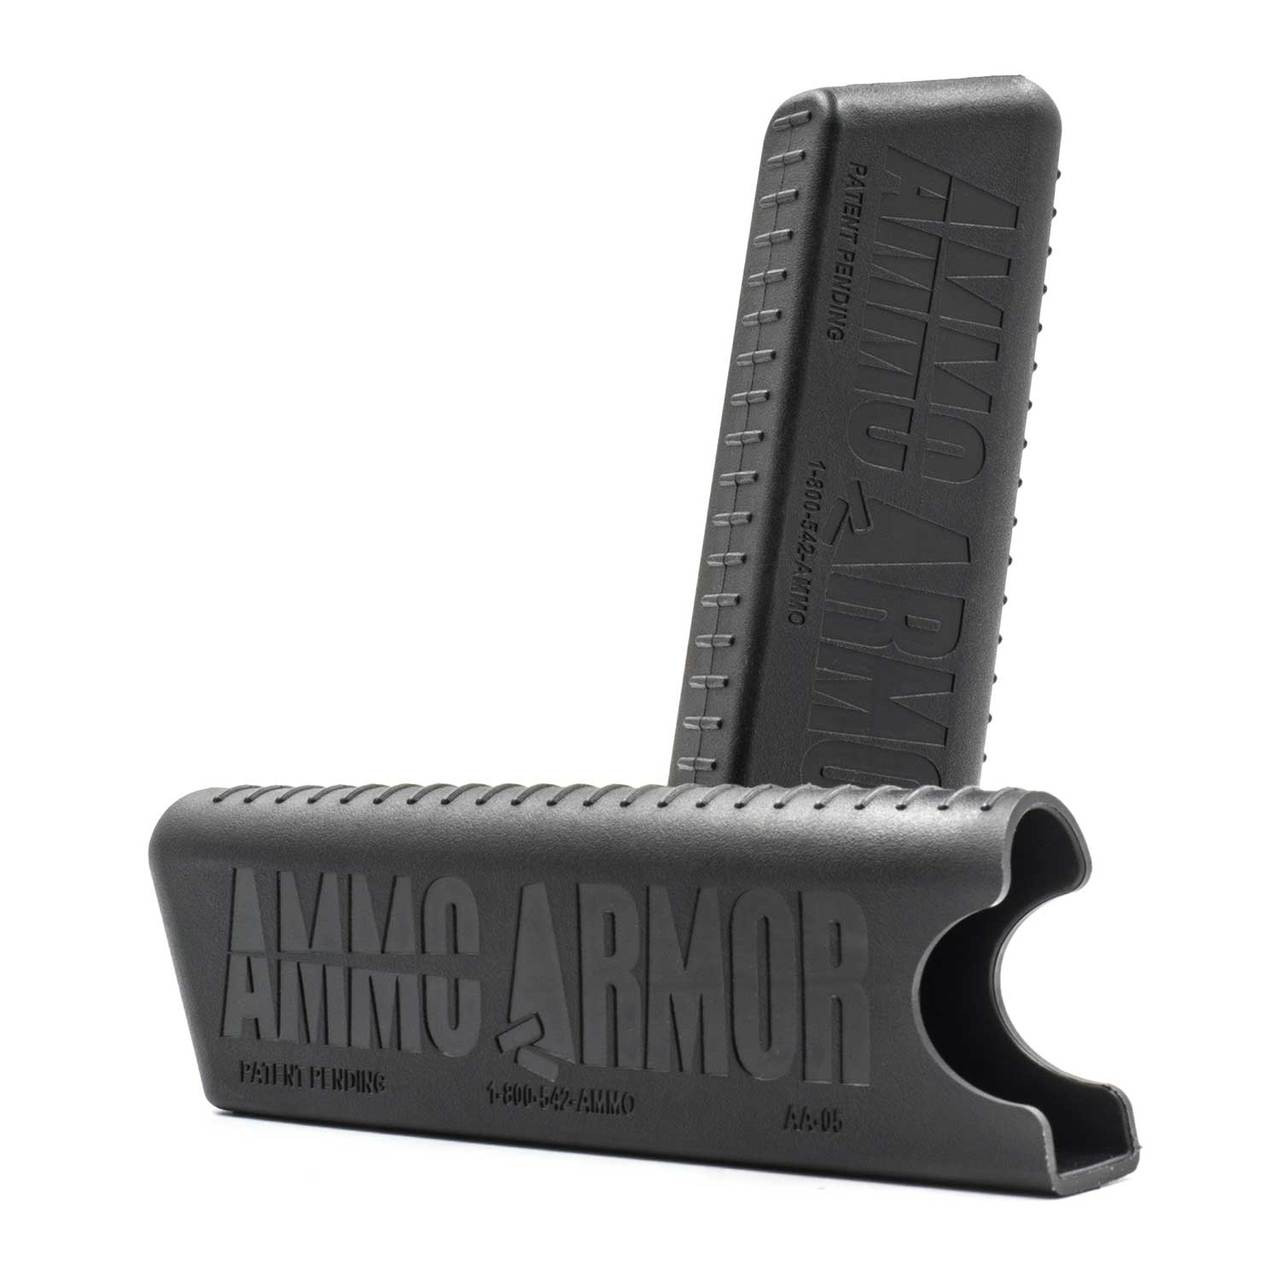 Kimber Stainless II (.45) Ammo Armor